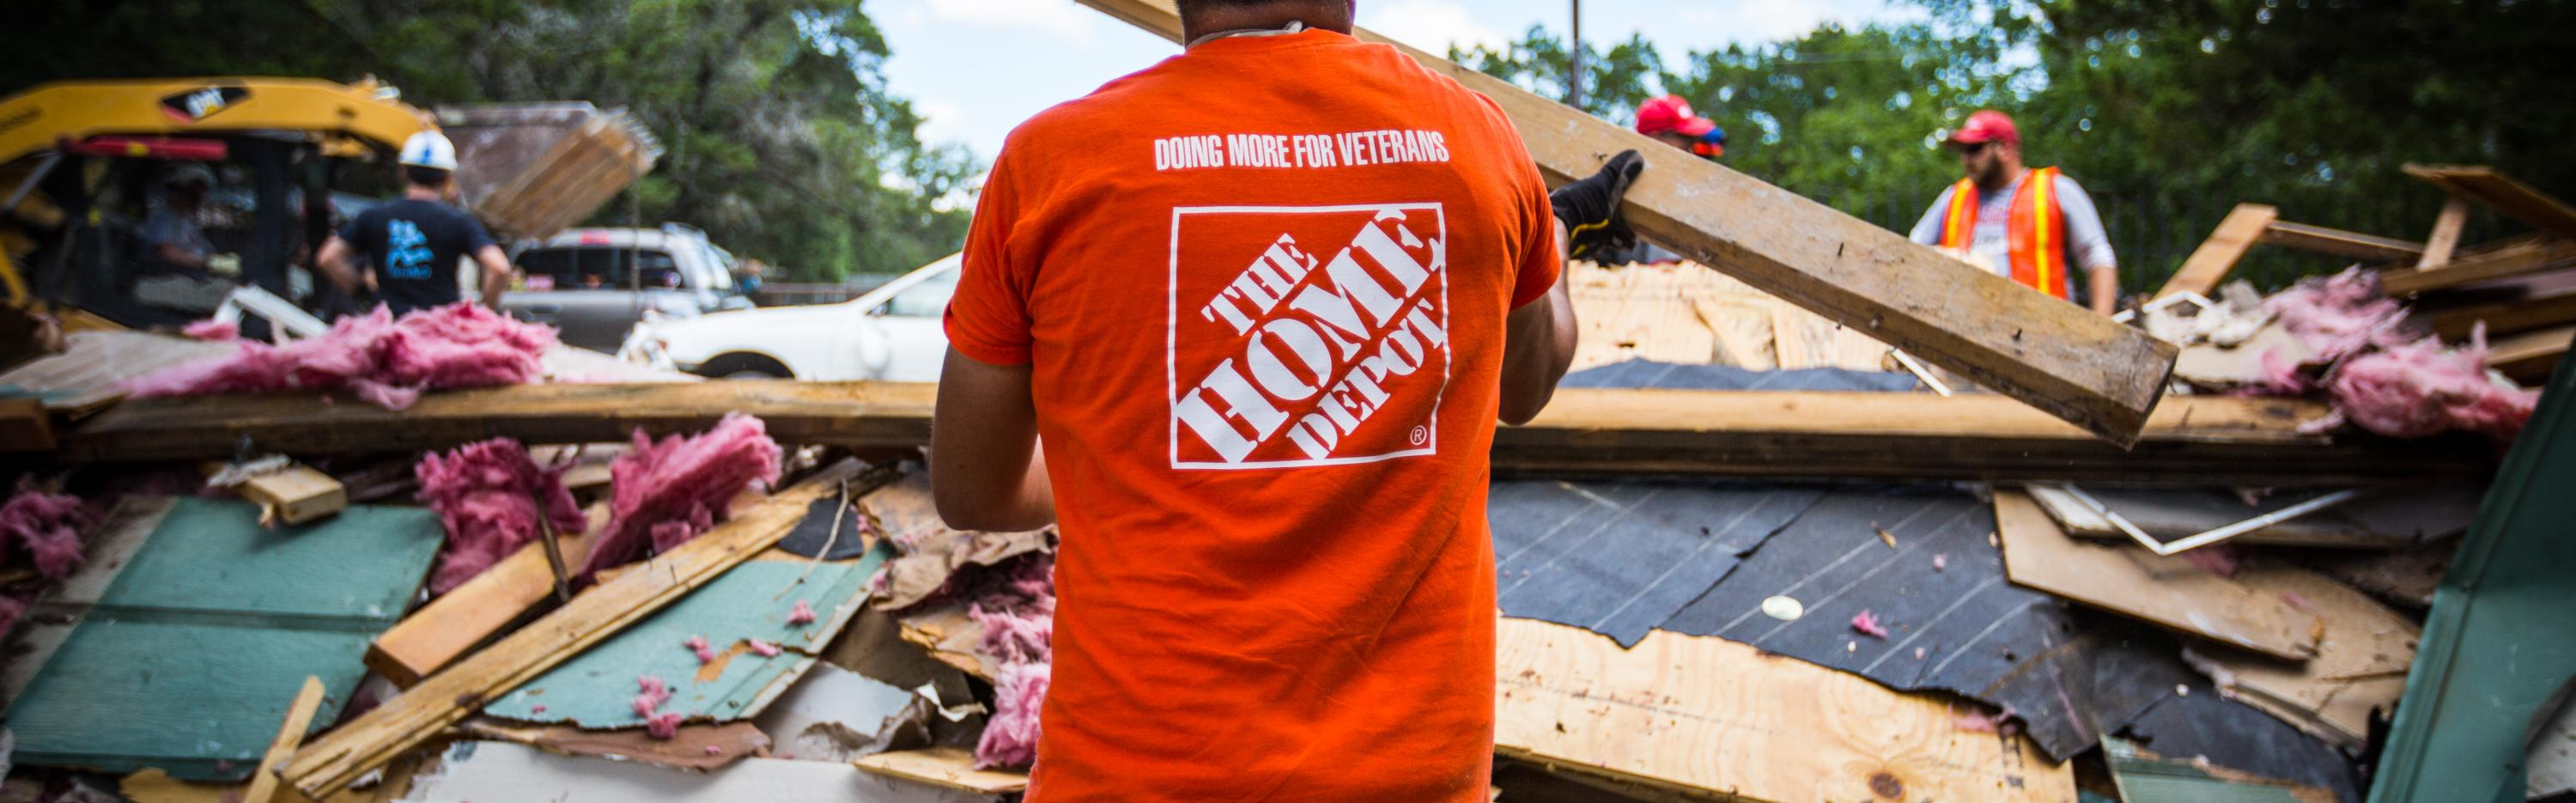 The Home Depot - Disaster Relief